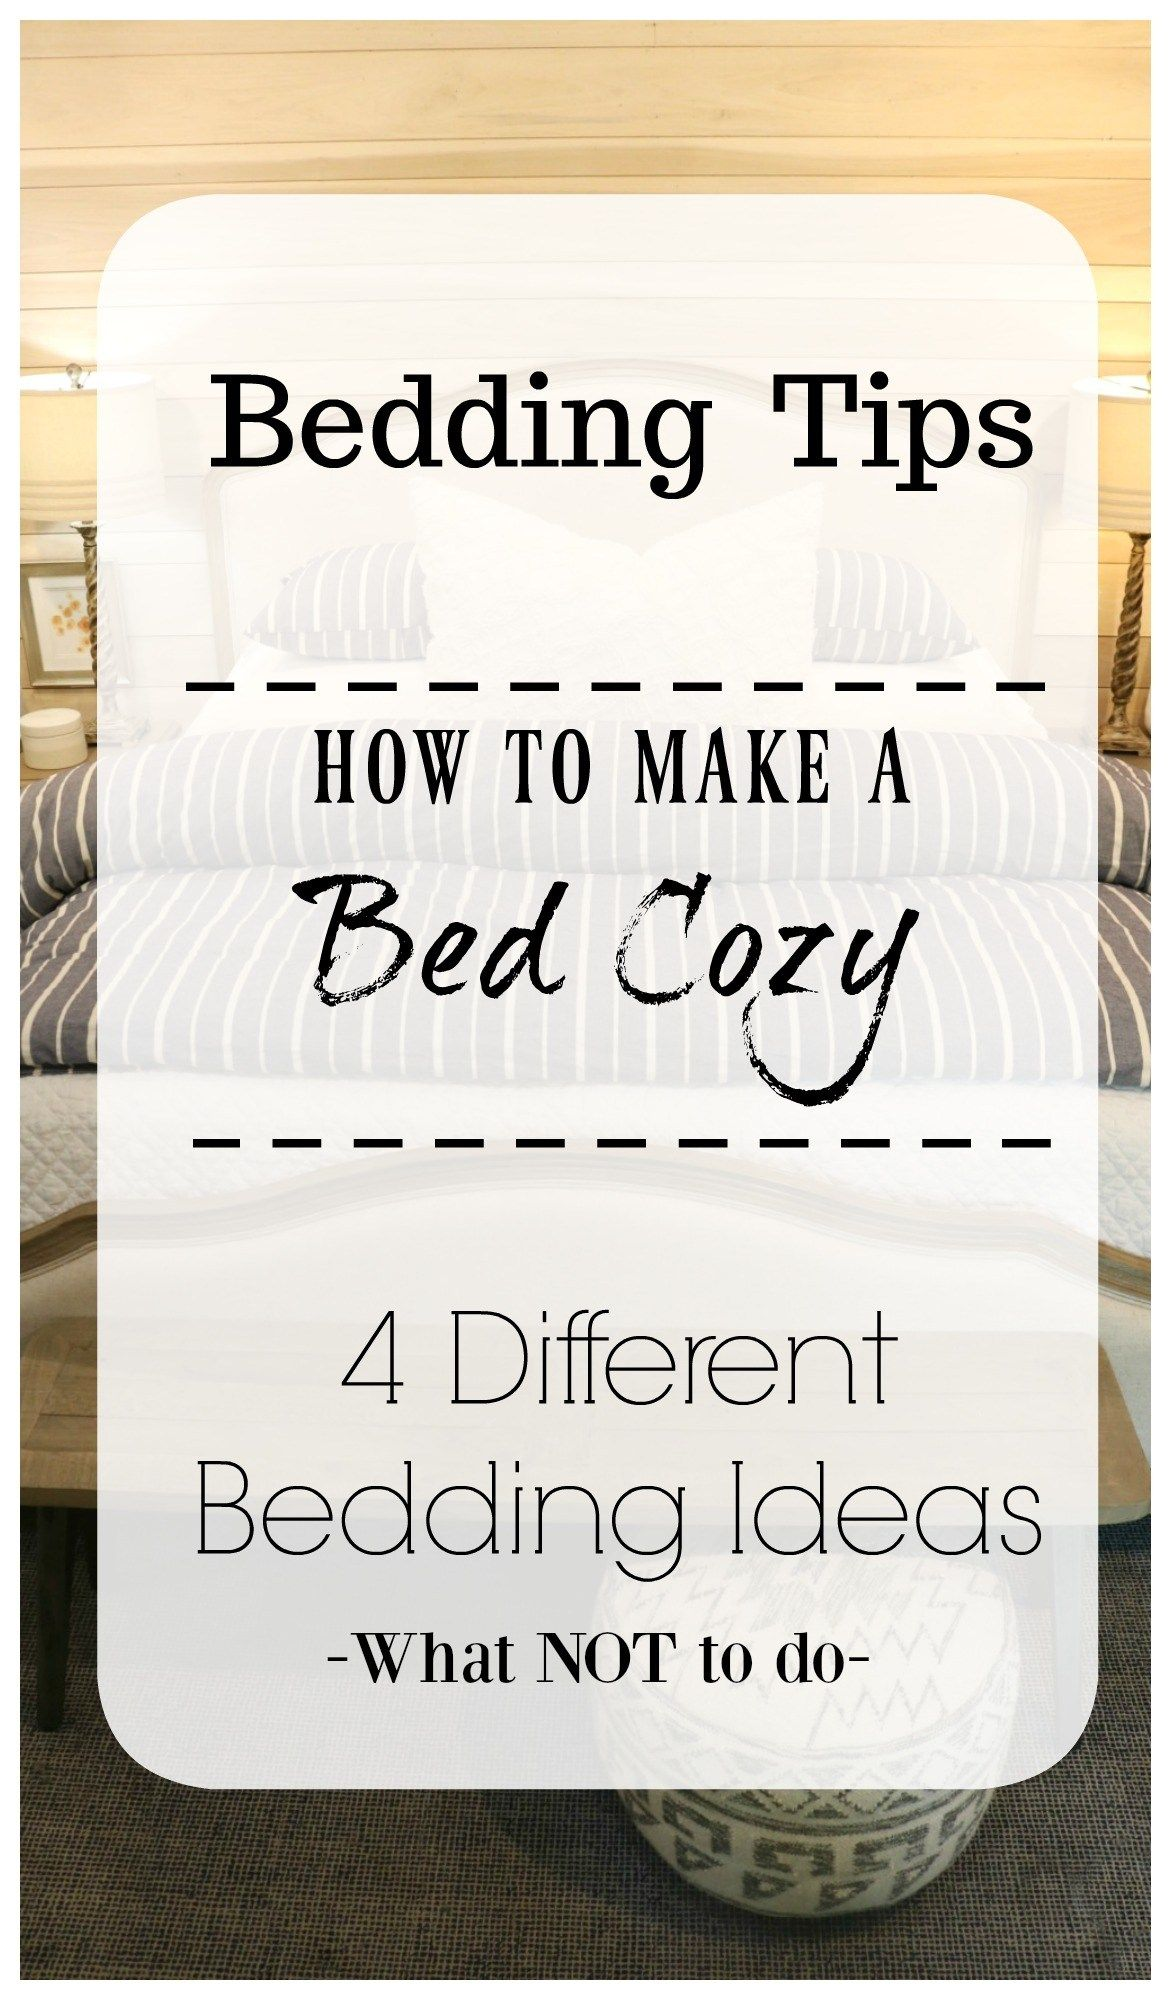 Master Bedroom Bedding- How to Make your Bedding Fluffy! Cozy bedding ideas for a beautiful master bedroom. #masterbedroom #bedroom